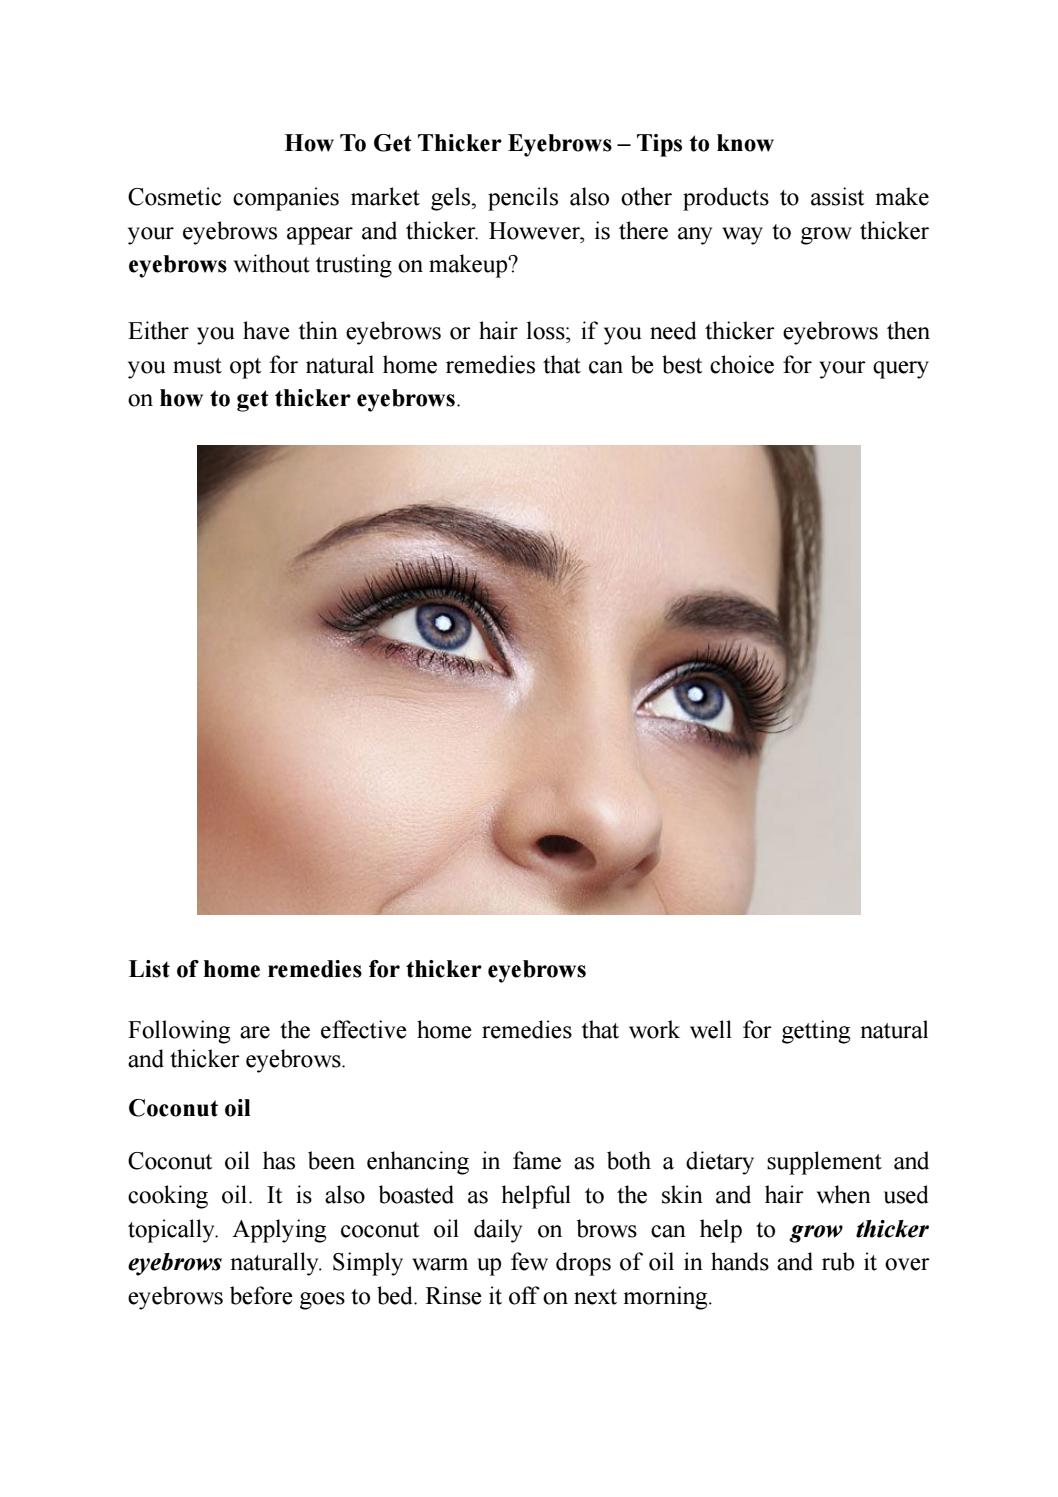 How To Get Thicker Eyebrows Effective Home Remedies To Try By